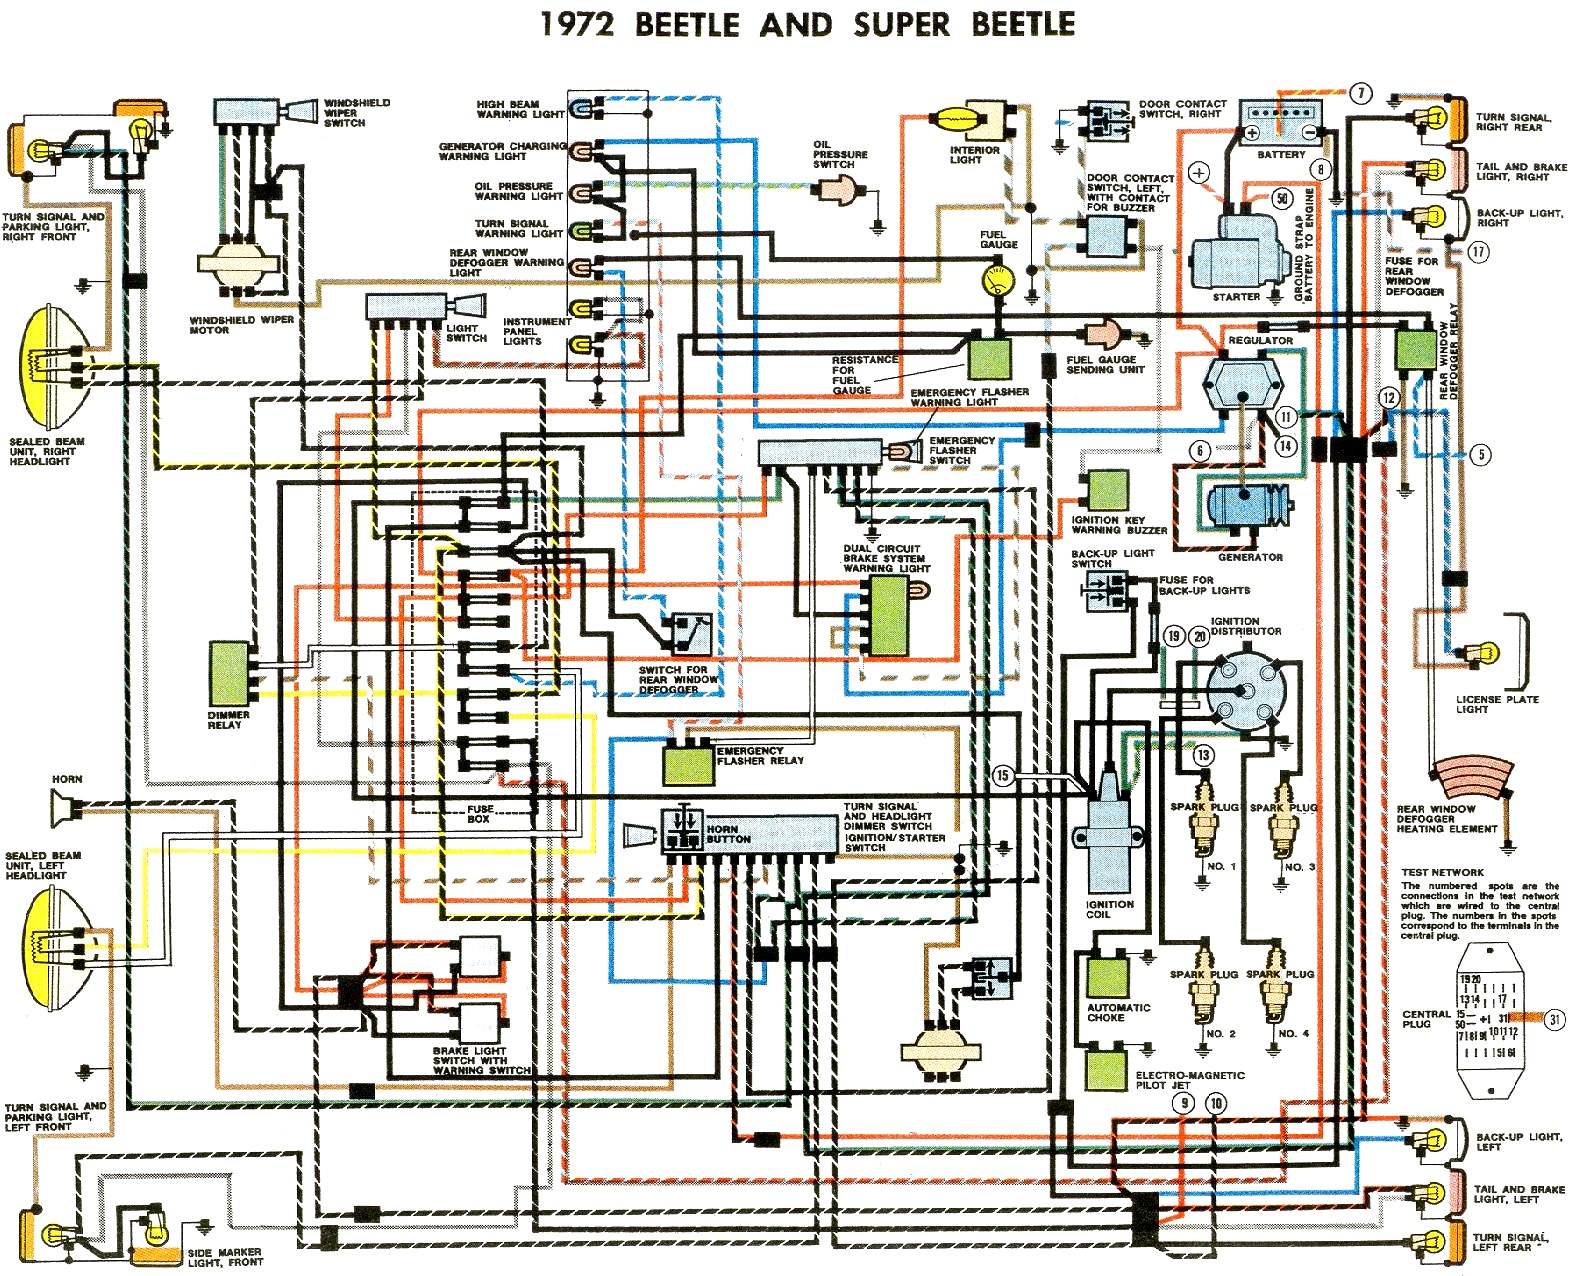 bug_72 1972 beetle wiring diagram thegoldenbug com 1974 super beetle wiring diagram at soozxer.org